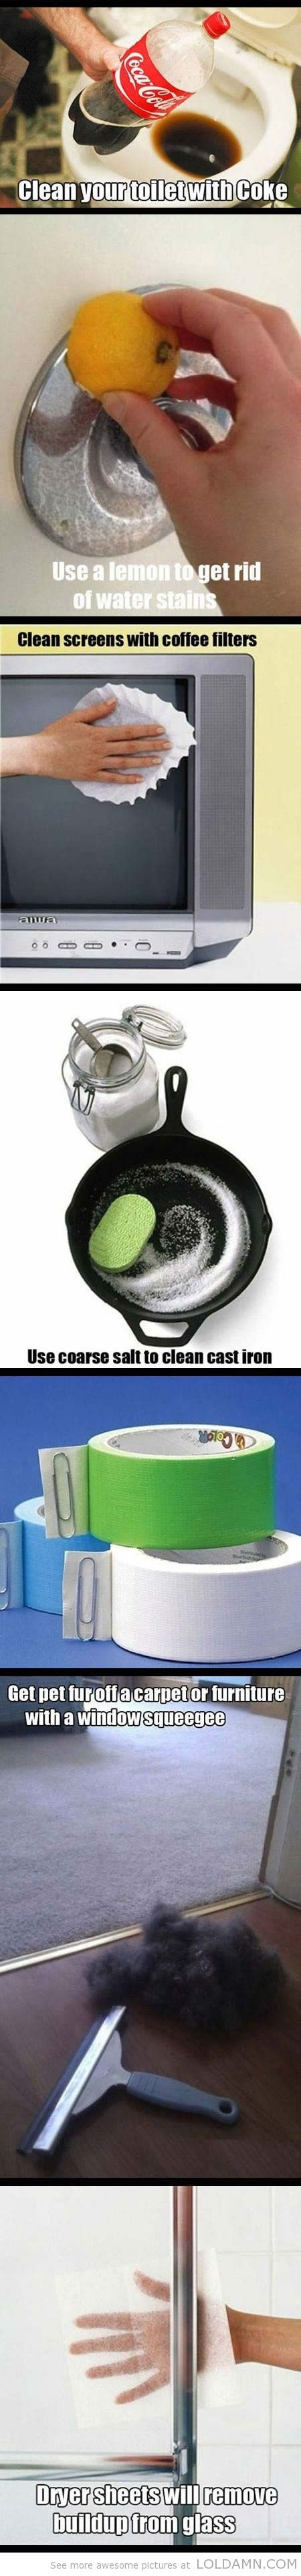 Life hack: 8 awesome cleaning tips...